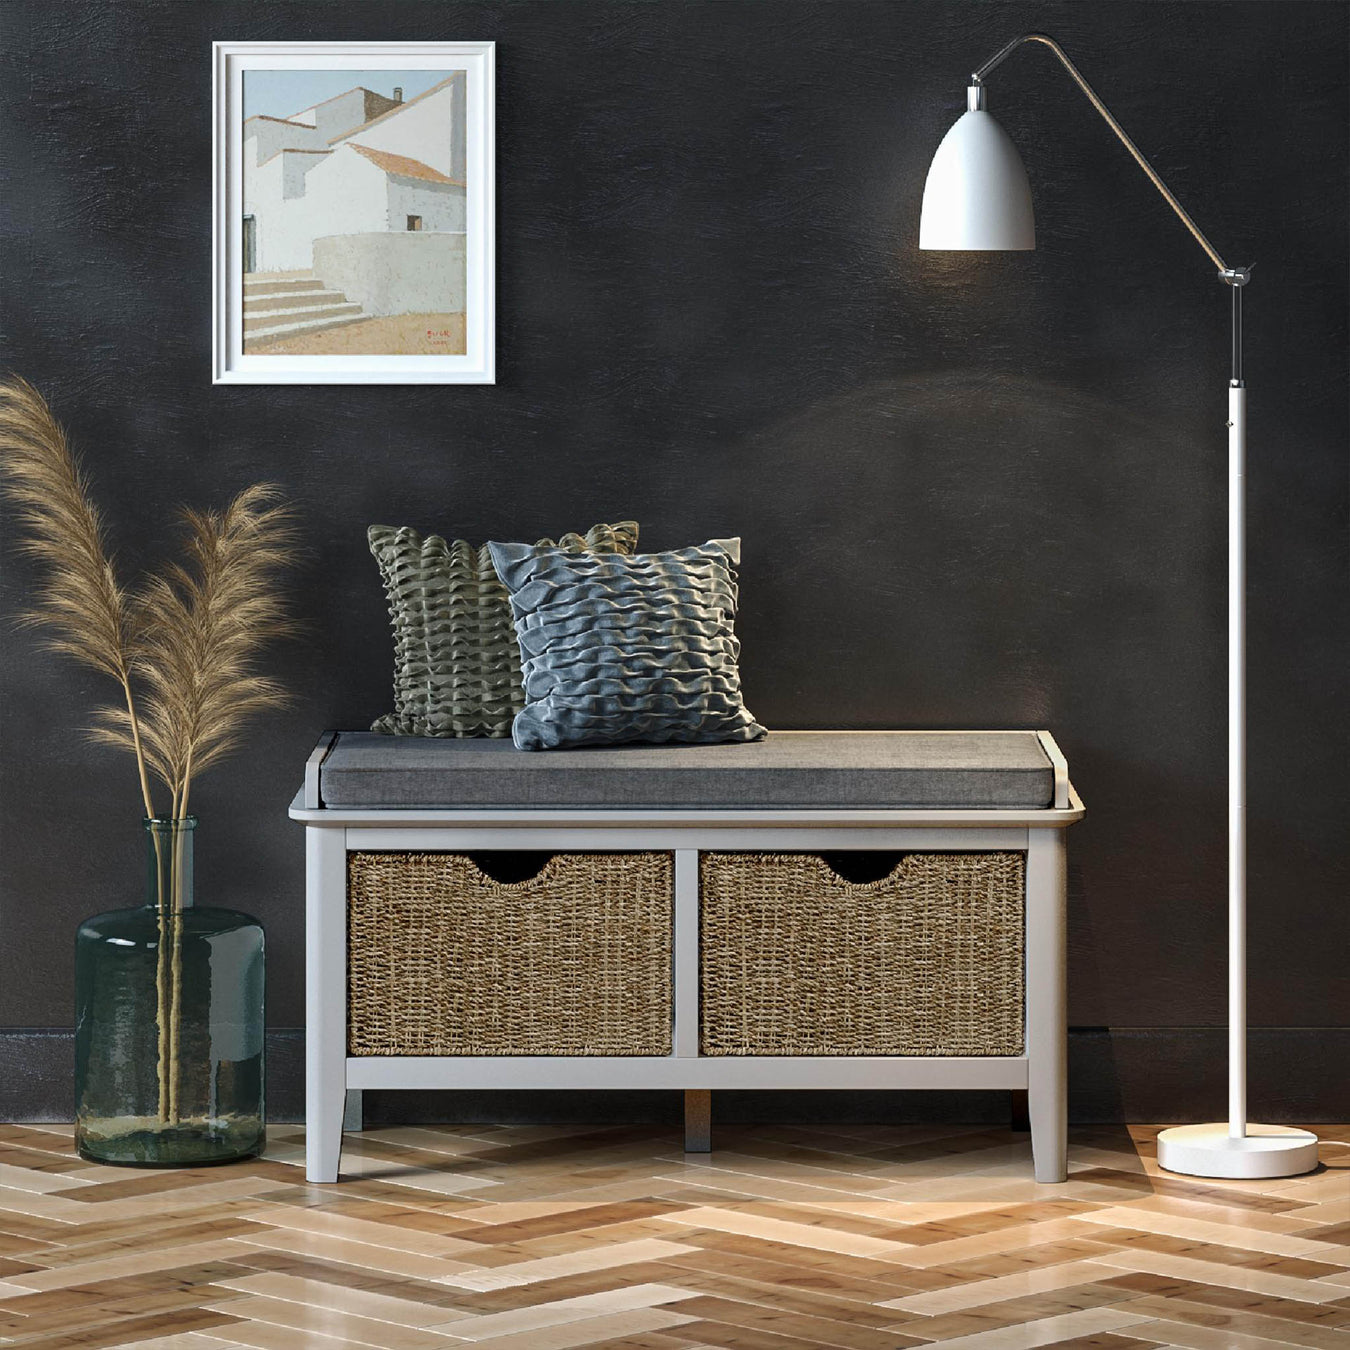 Oak & Solid Wood Dining Room Benches - Hall Benches - Roseland Furniture